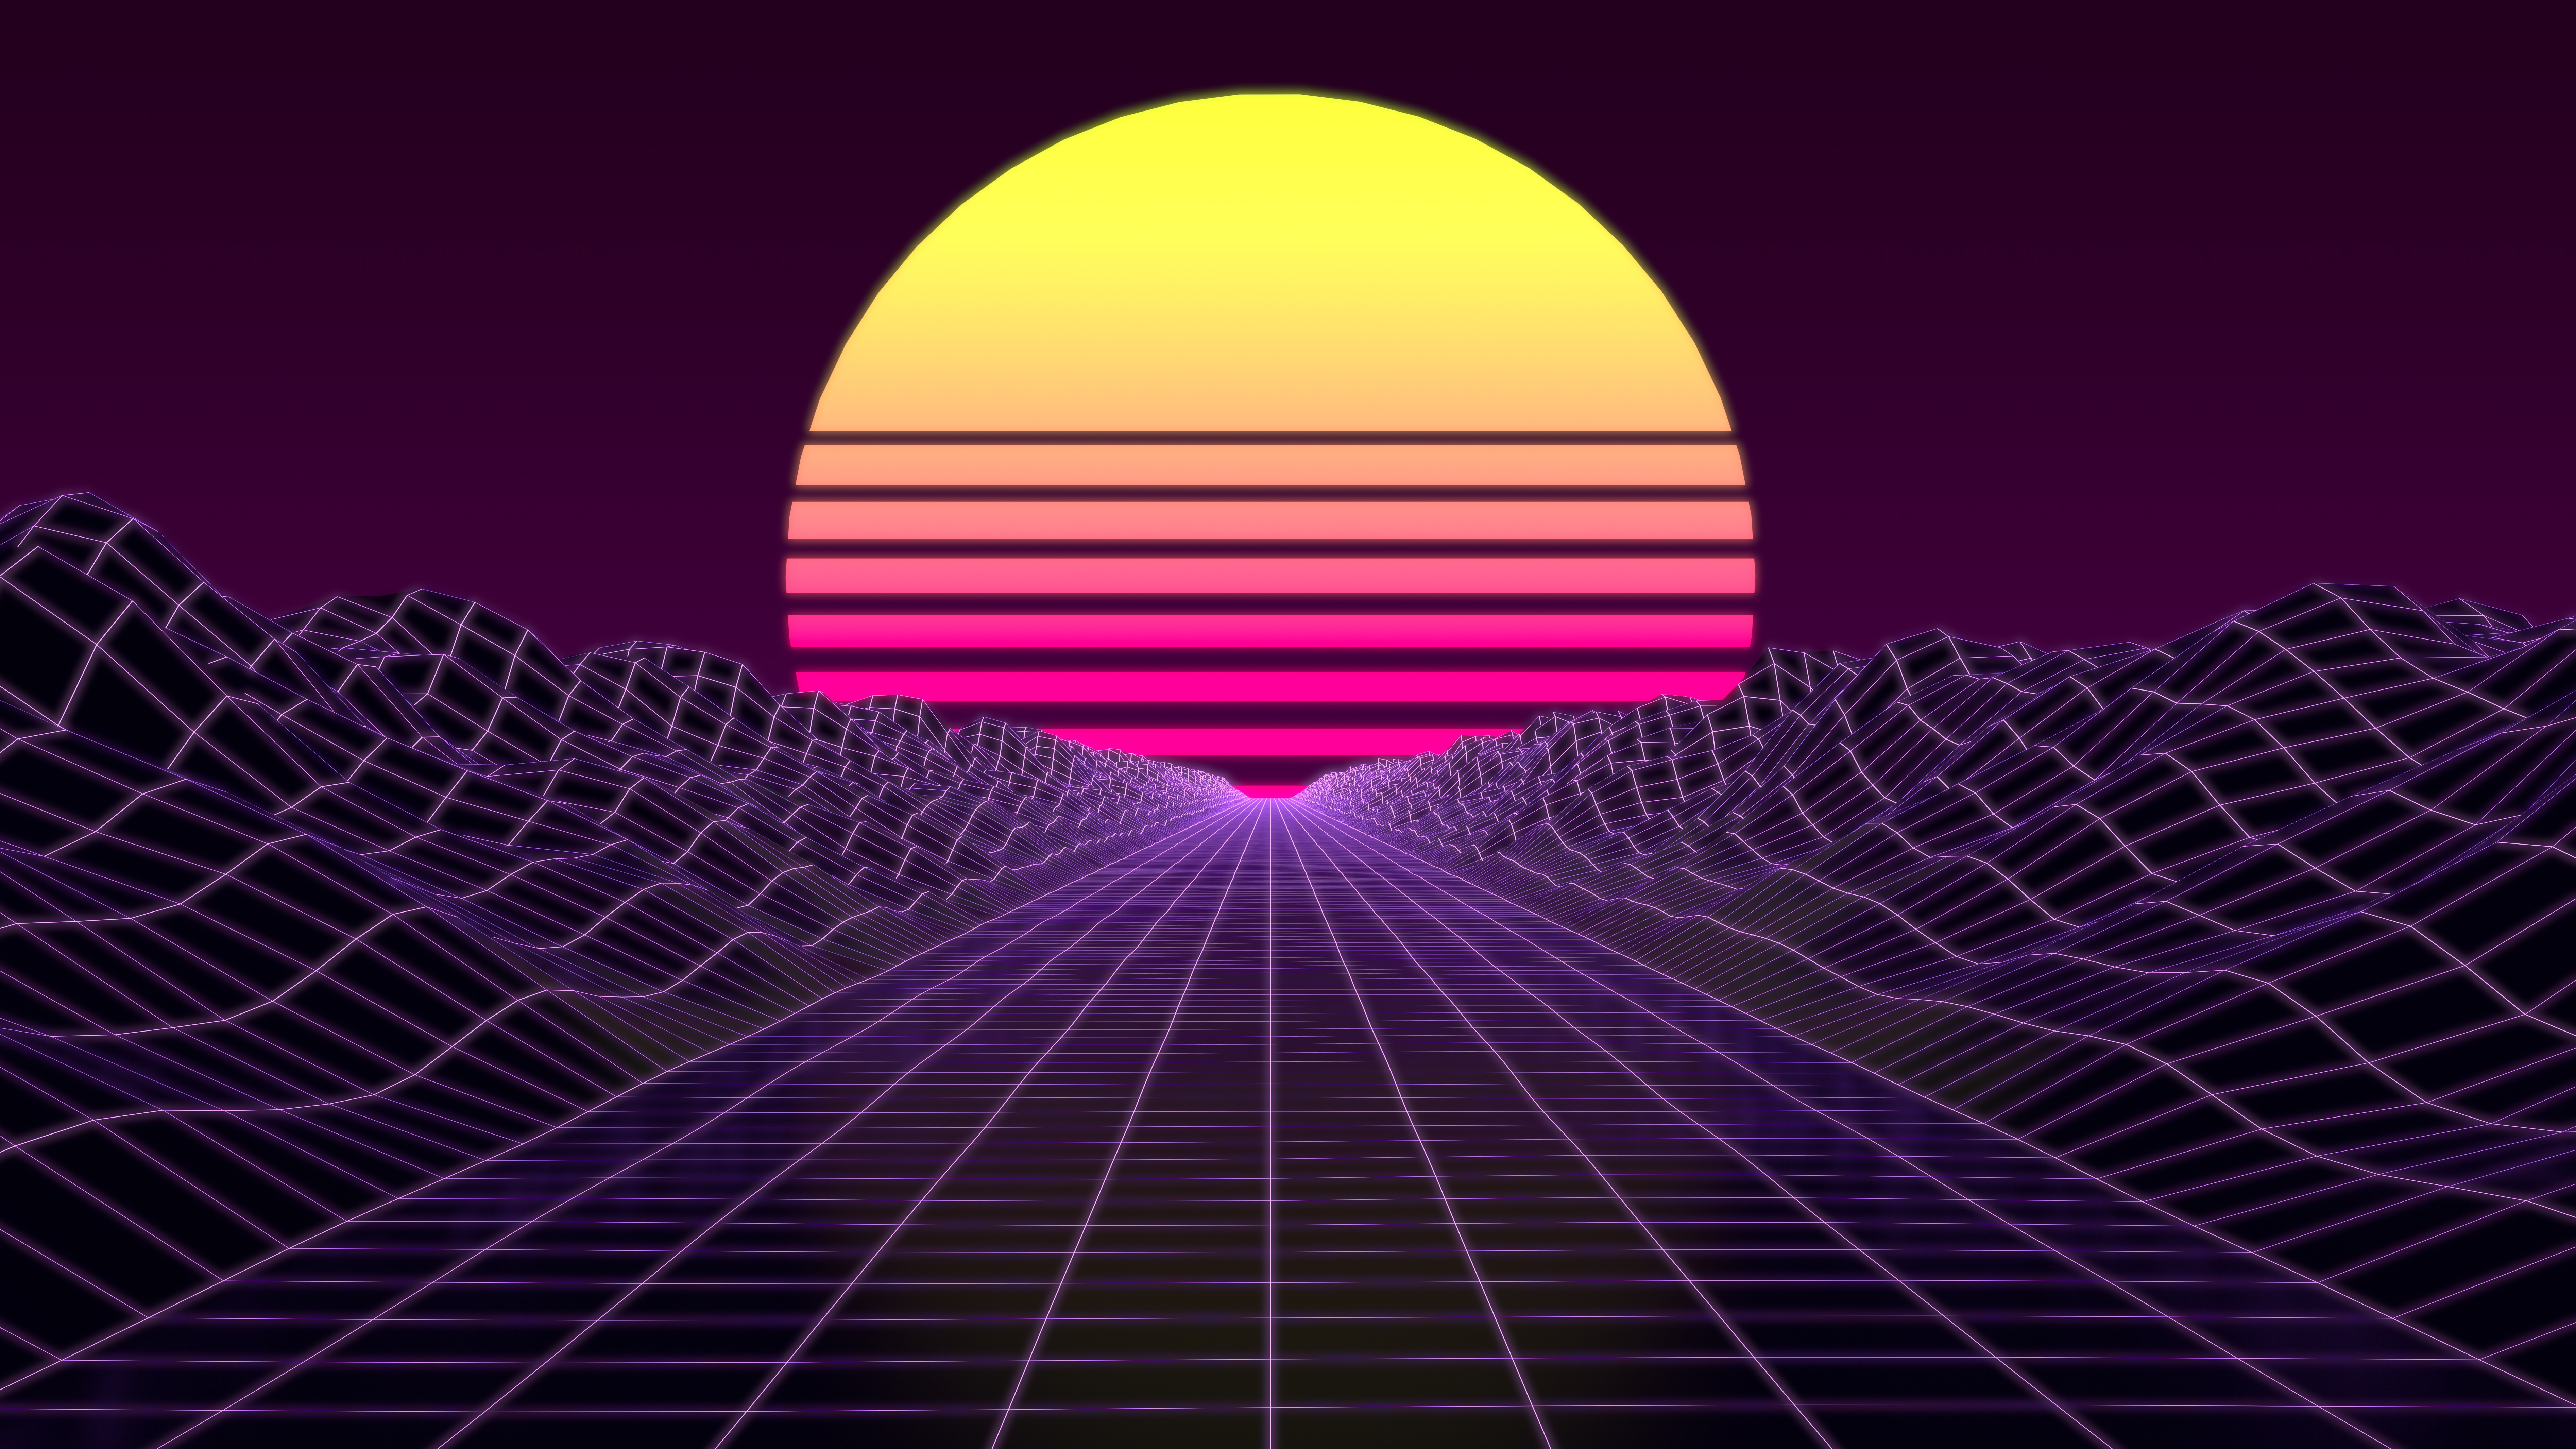 Synthwave 8k, HD Abstract, 4k Wallpapers, Images ...